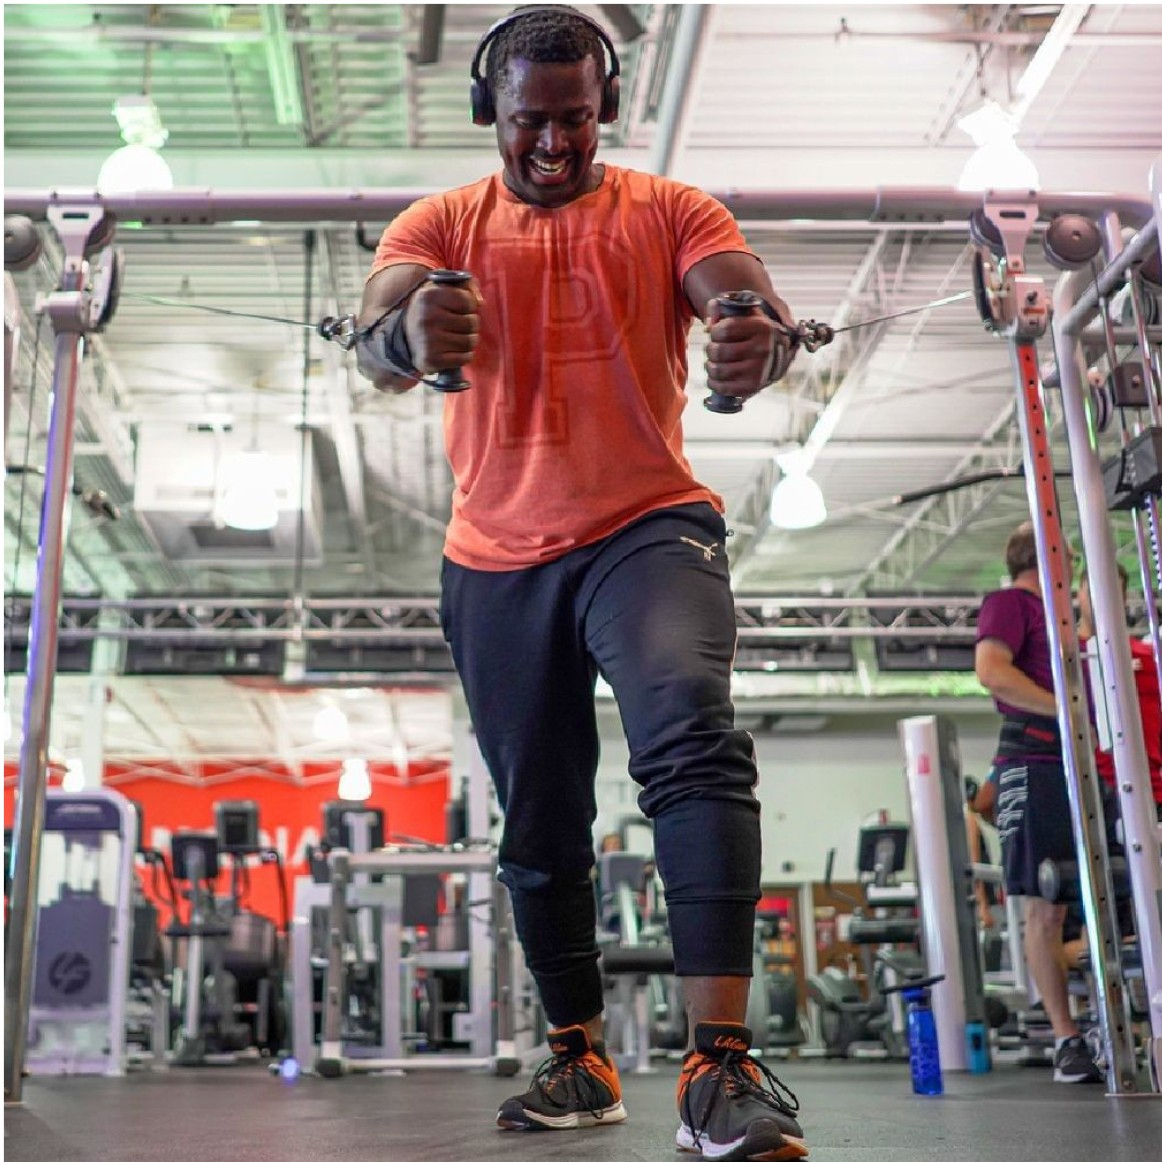 man in orange t-shirt with headphones does a chest press on a pulley machine